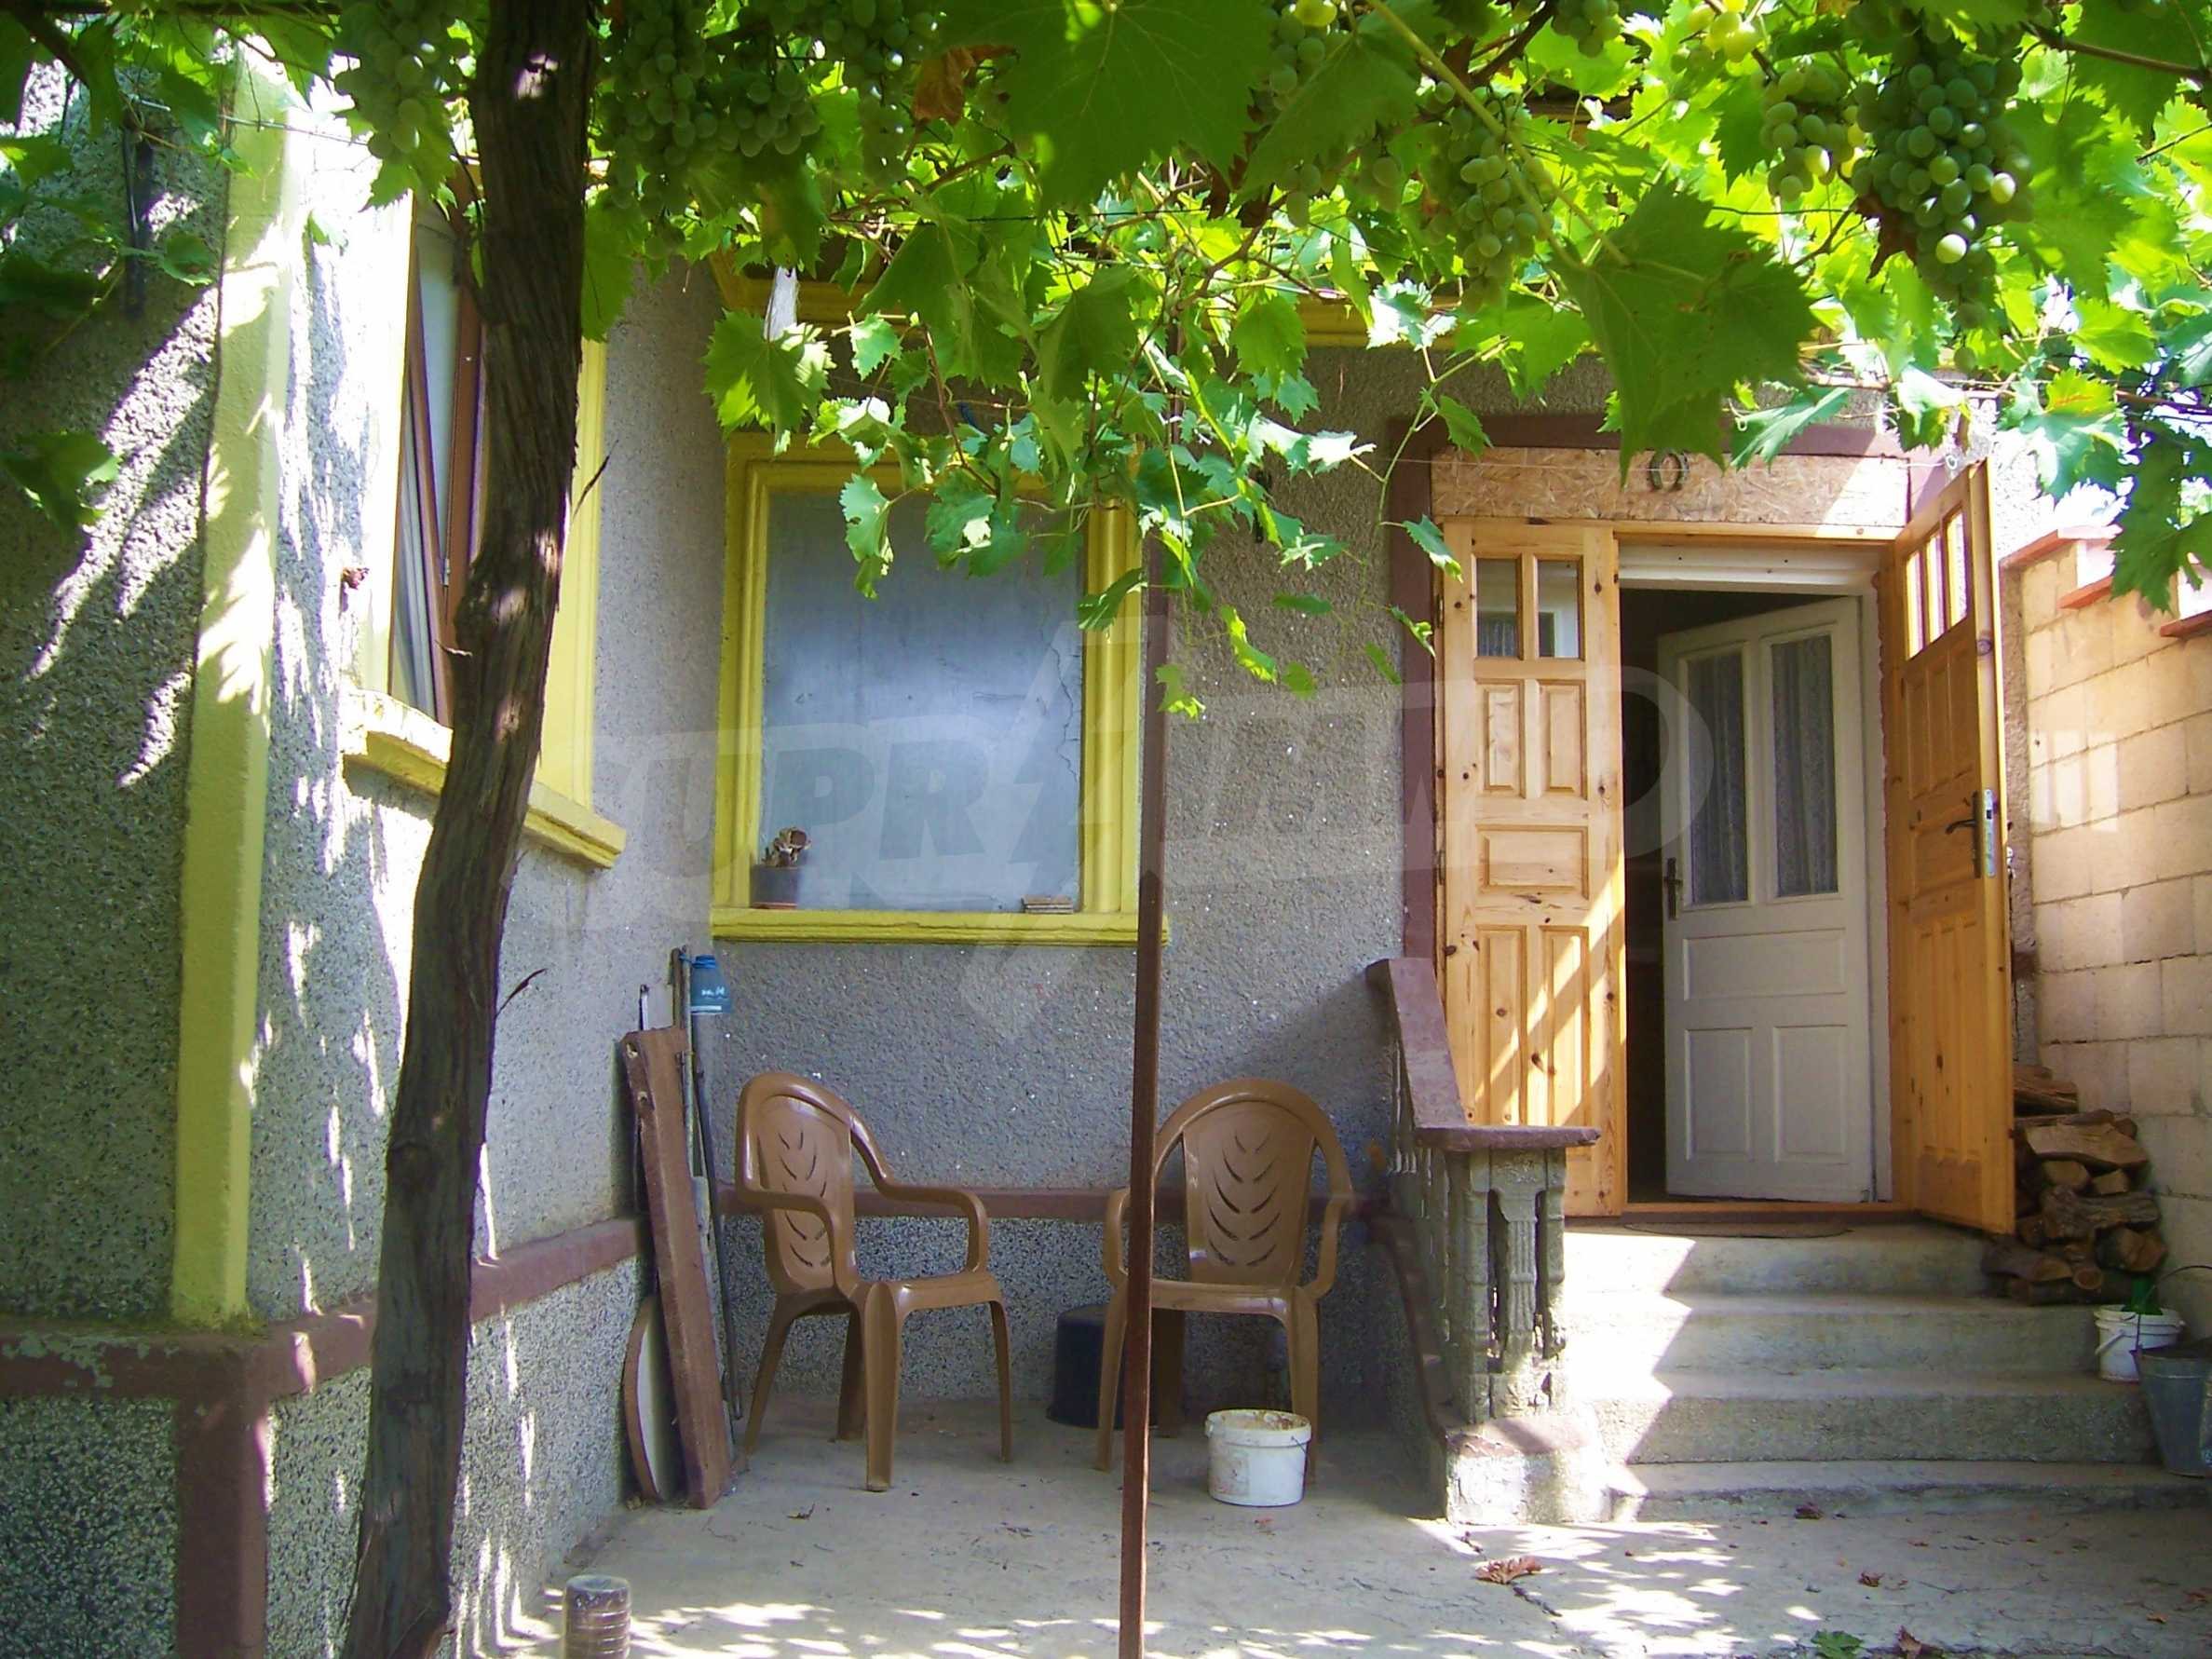 House for sale in Balchik, Bulgaria - Sales - house.